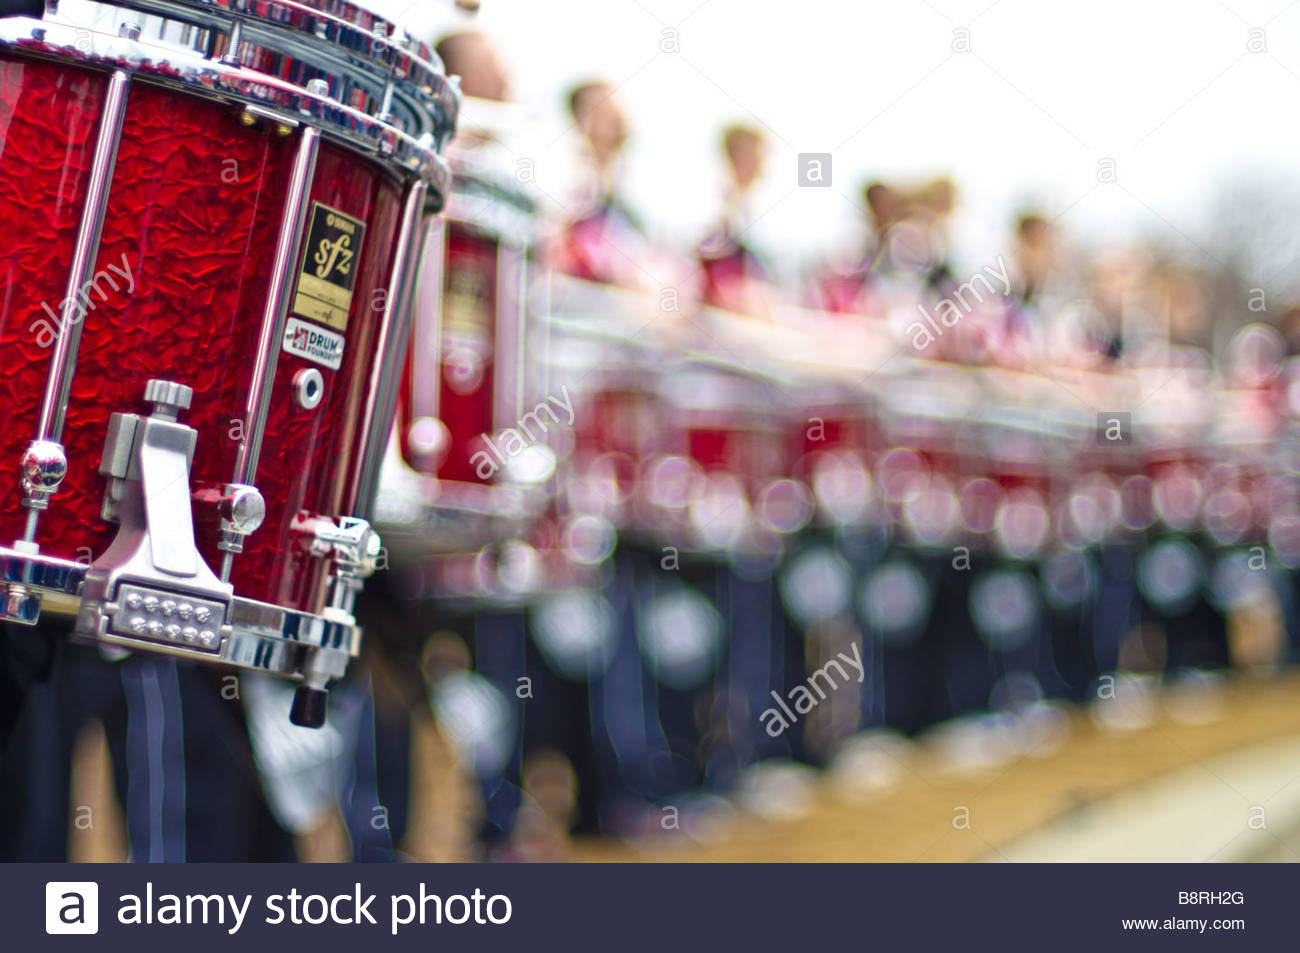 Drumline Stock Photos Drumline Stock Images   Alamy 1300x953